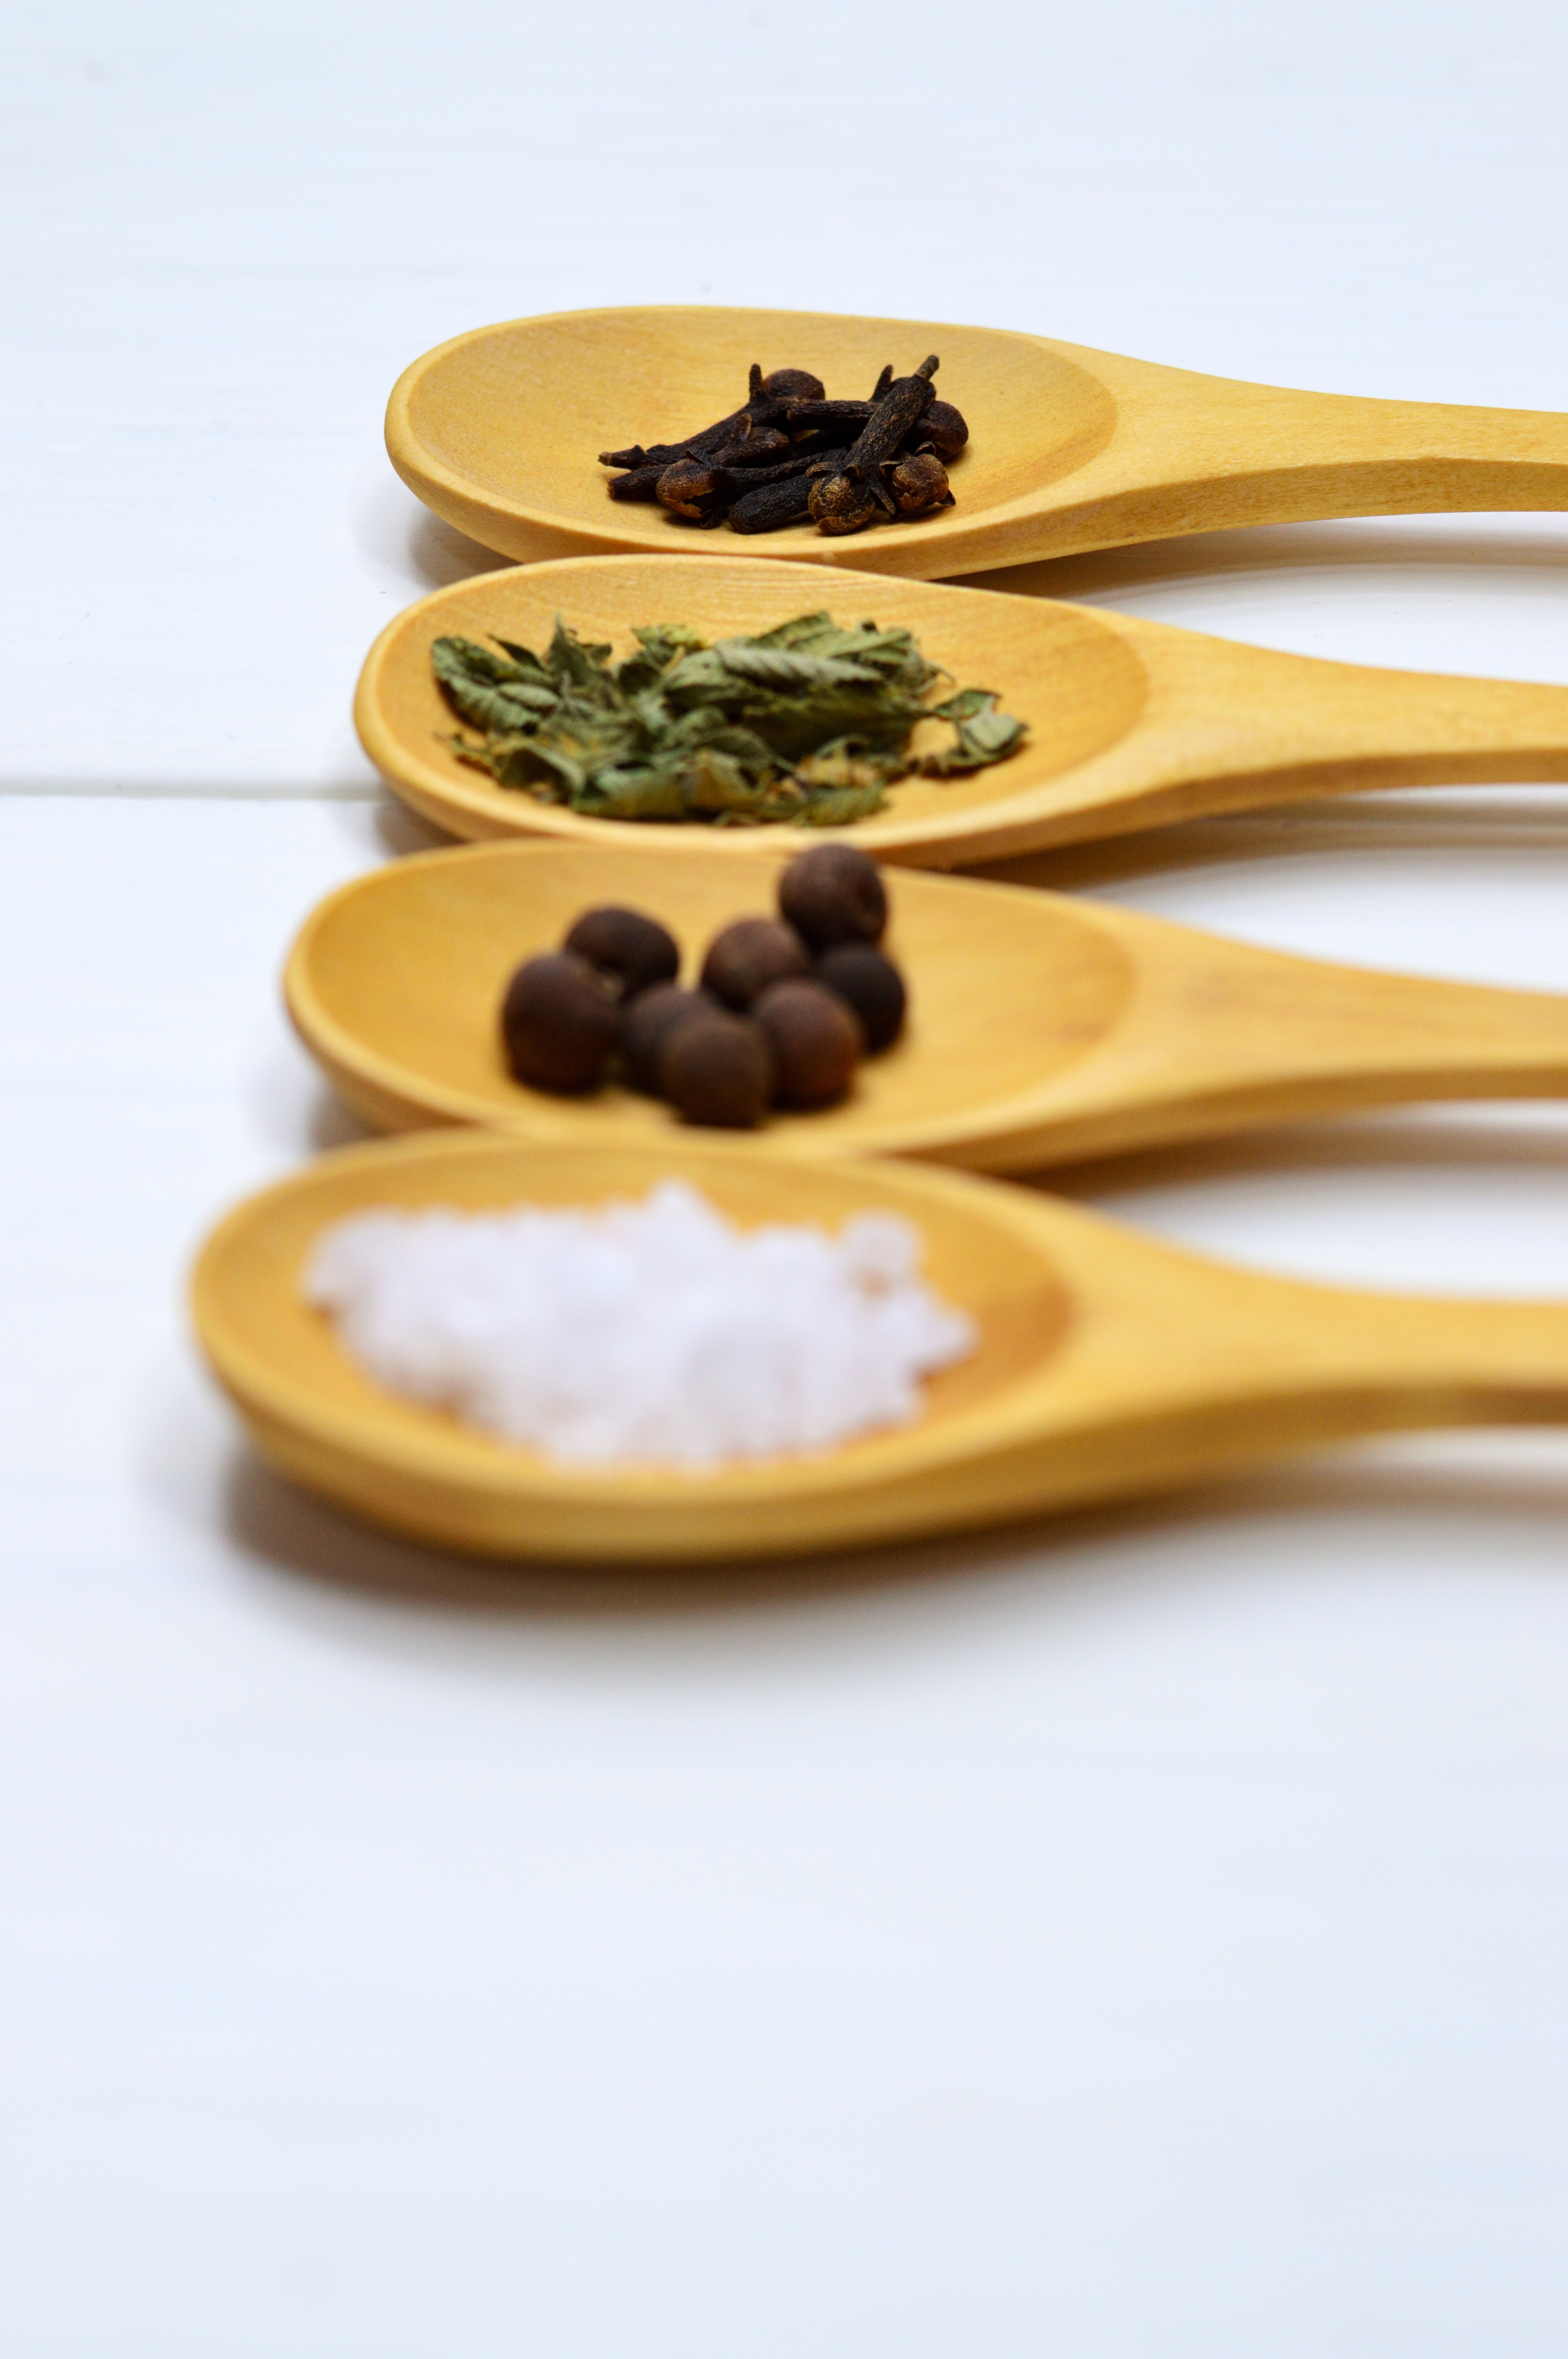 Four Assorted Spices on Brown Wooden Spoon, Bright, Close -up, Herbs, Ingredients, HQ Photo